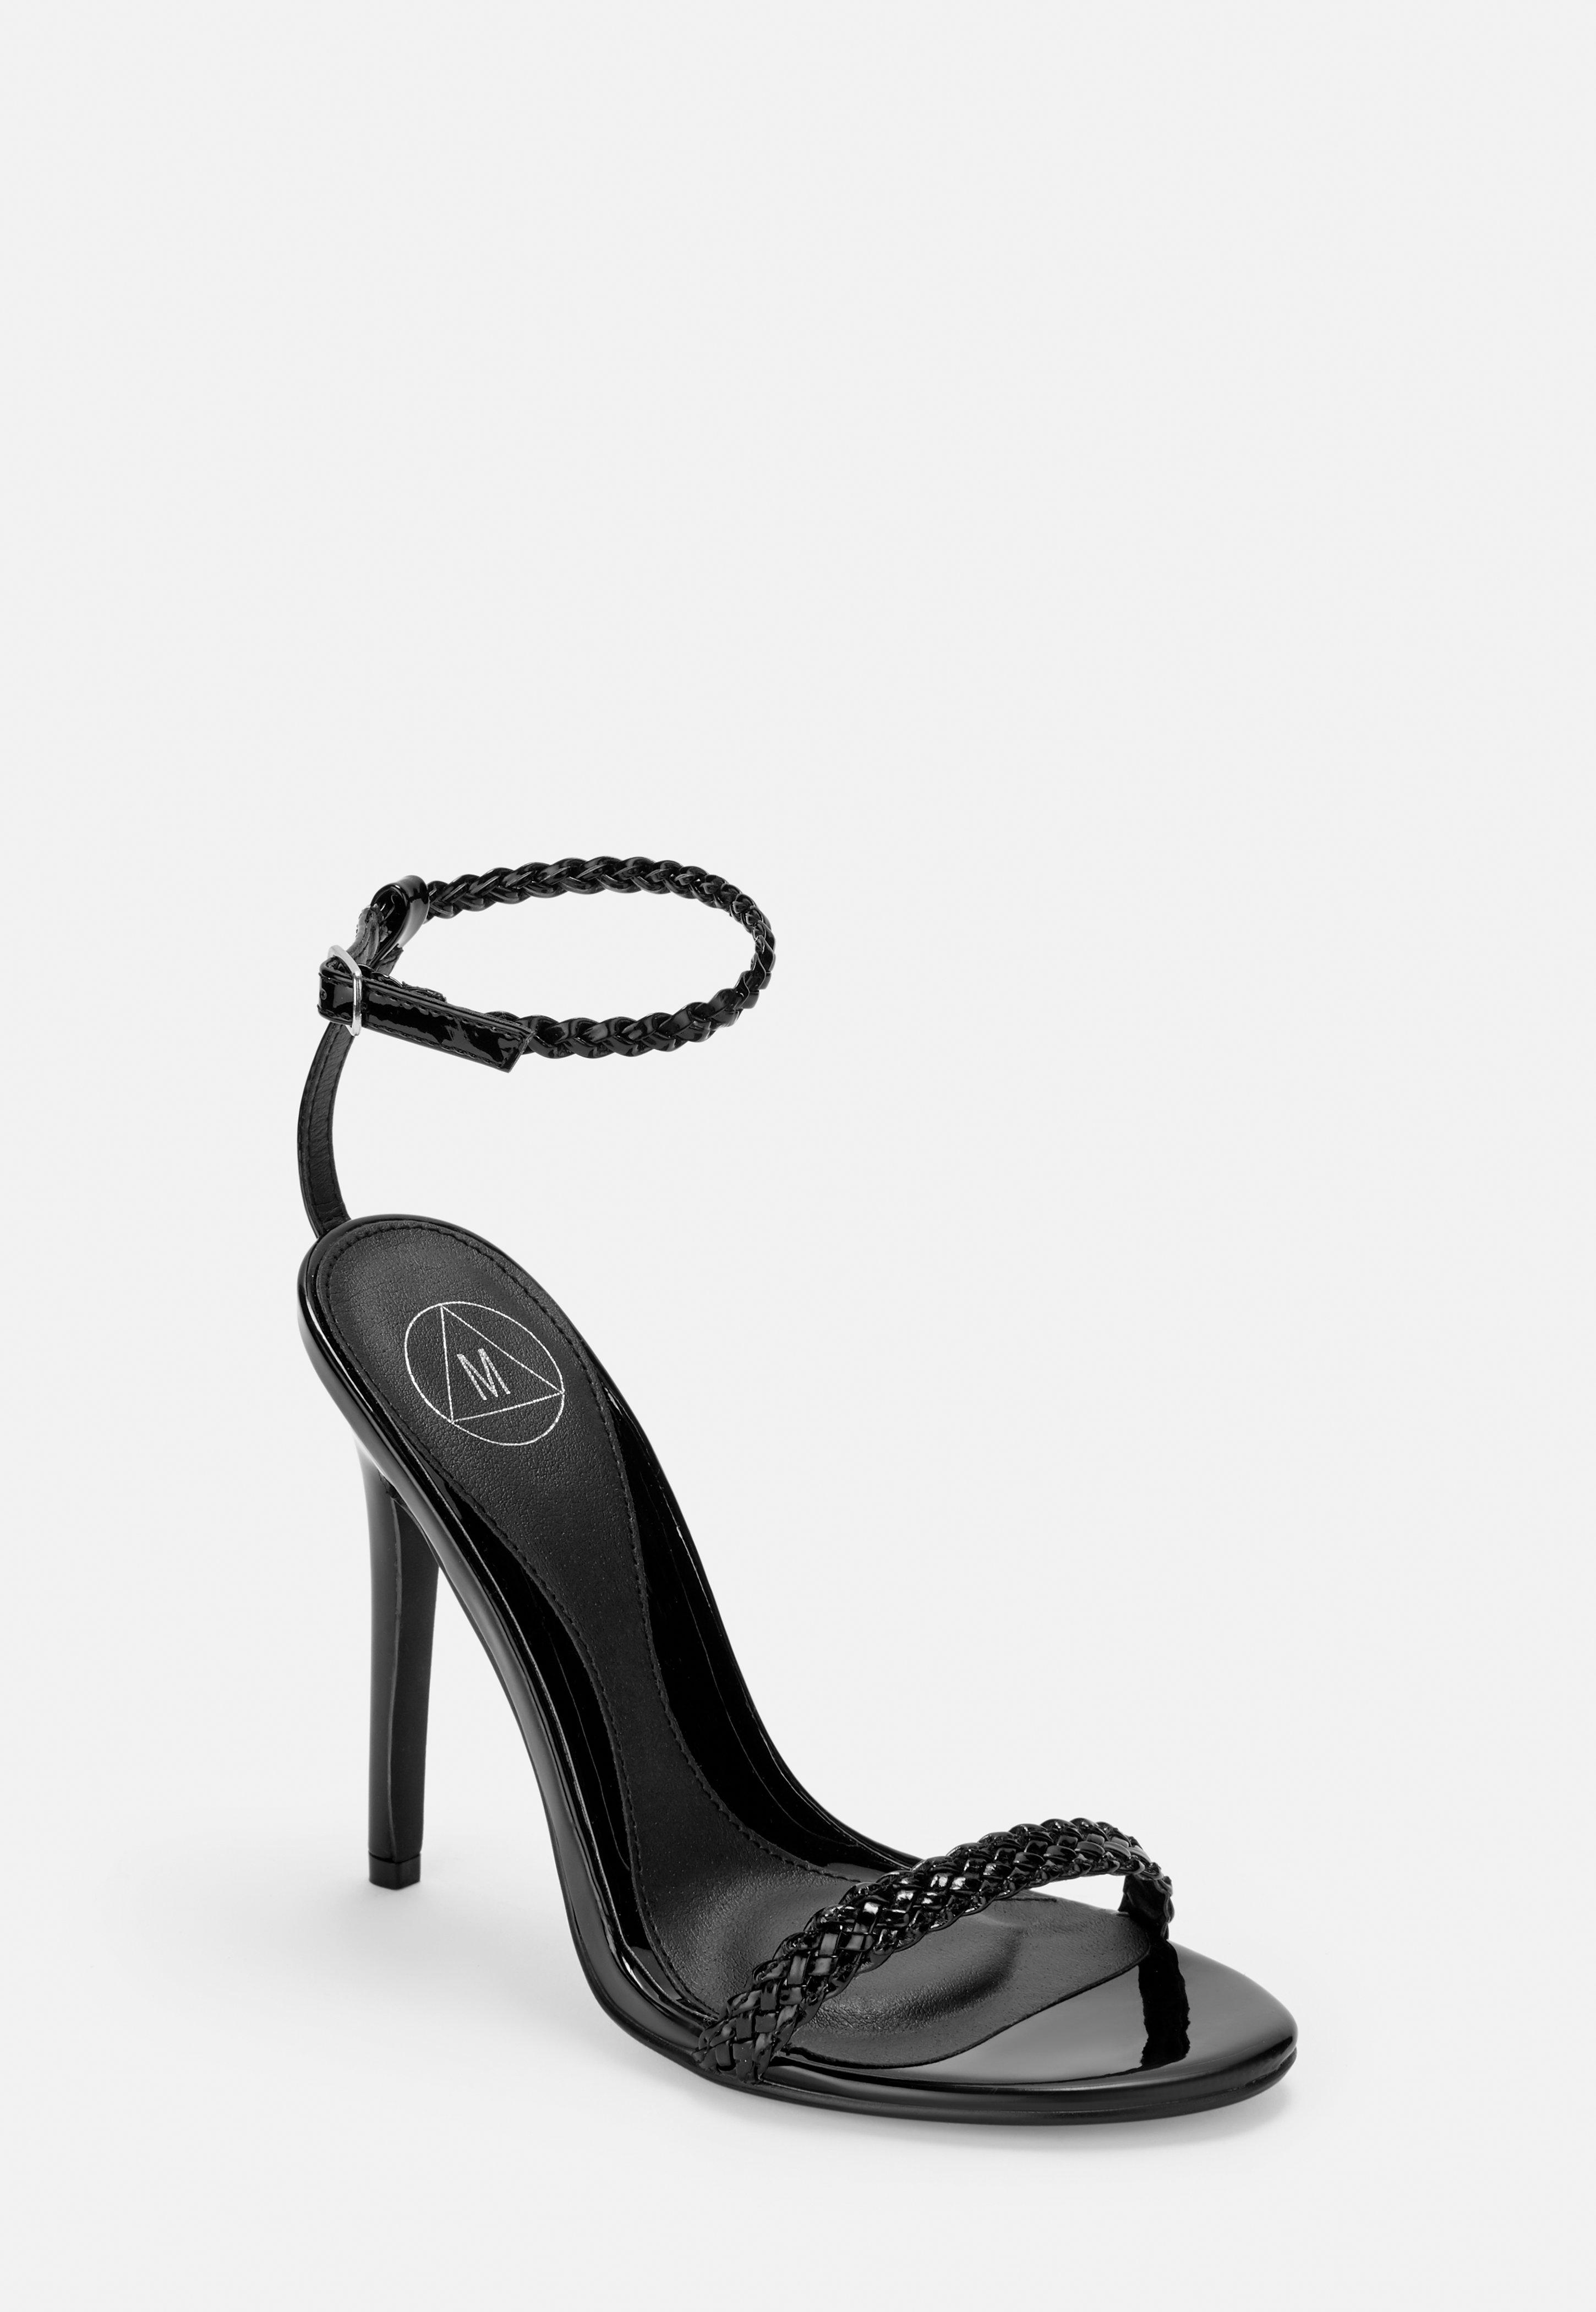 4c843d06e Barely There Heels - High Heels - Shoes